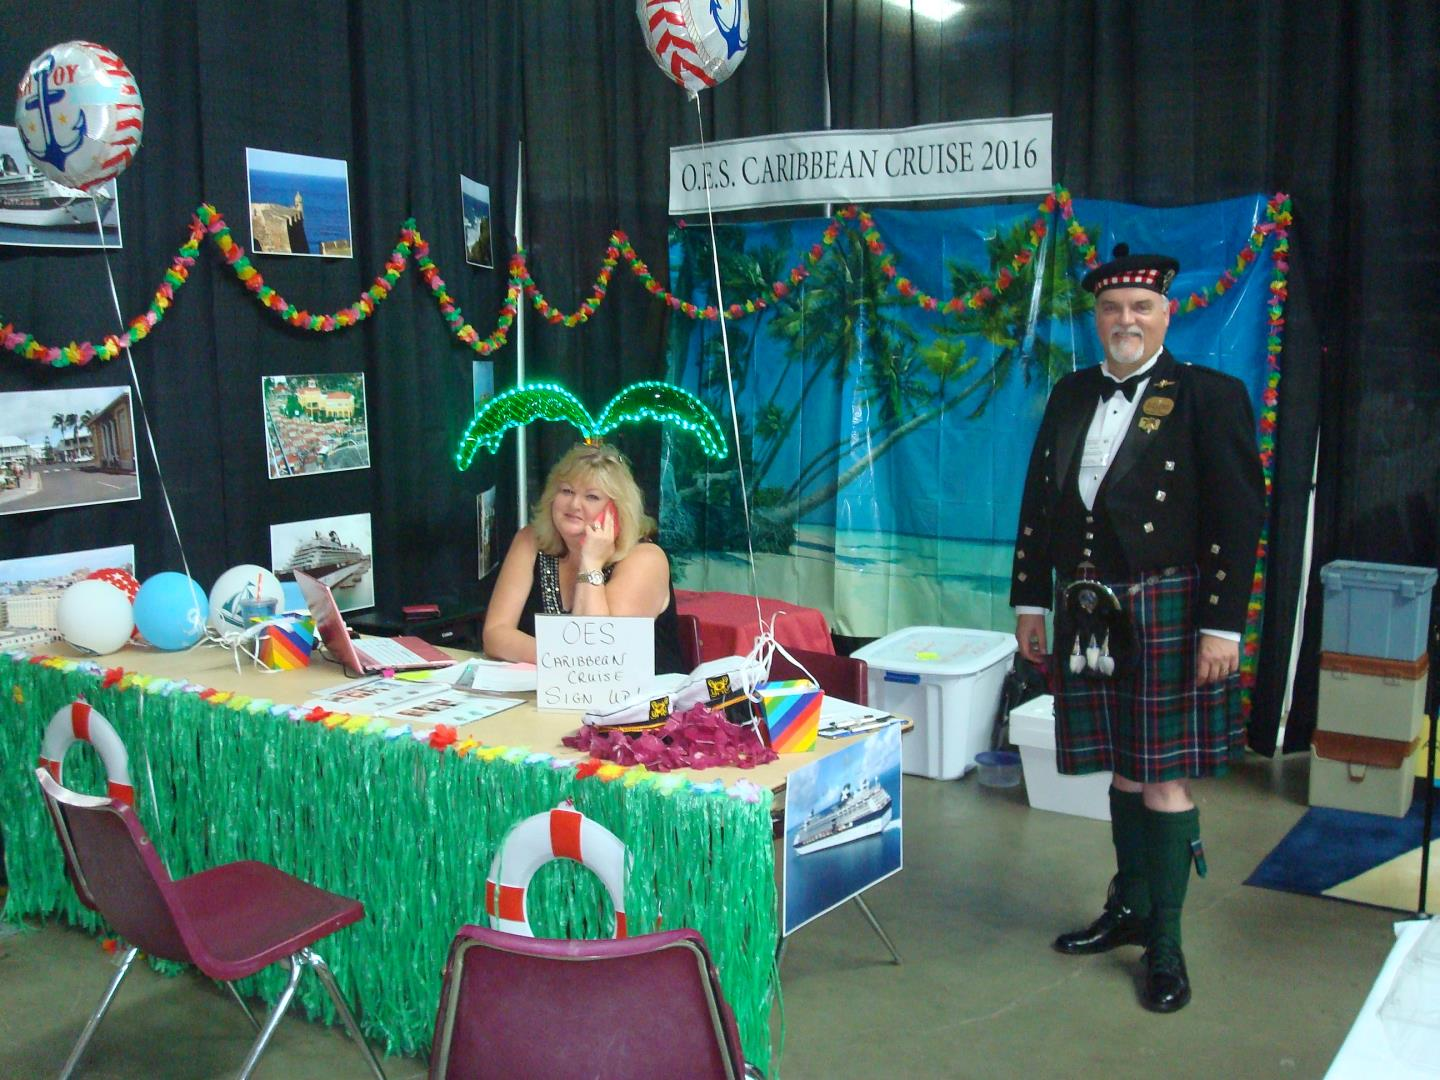 Cruise Trade Show for OES 2016